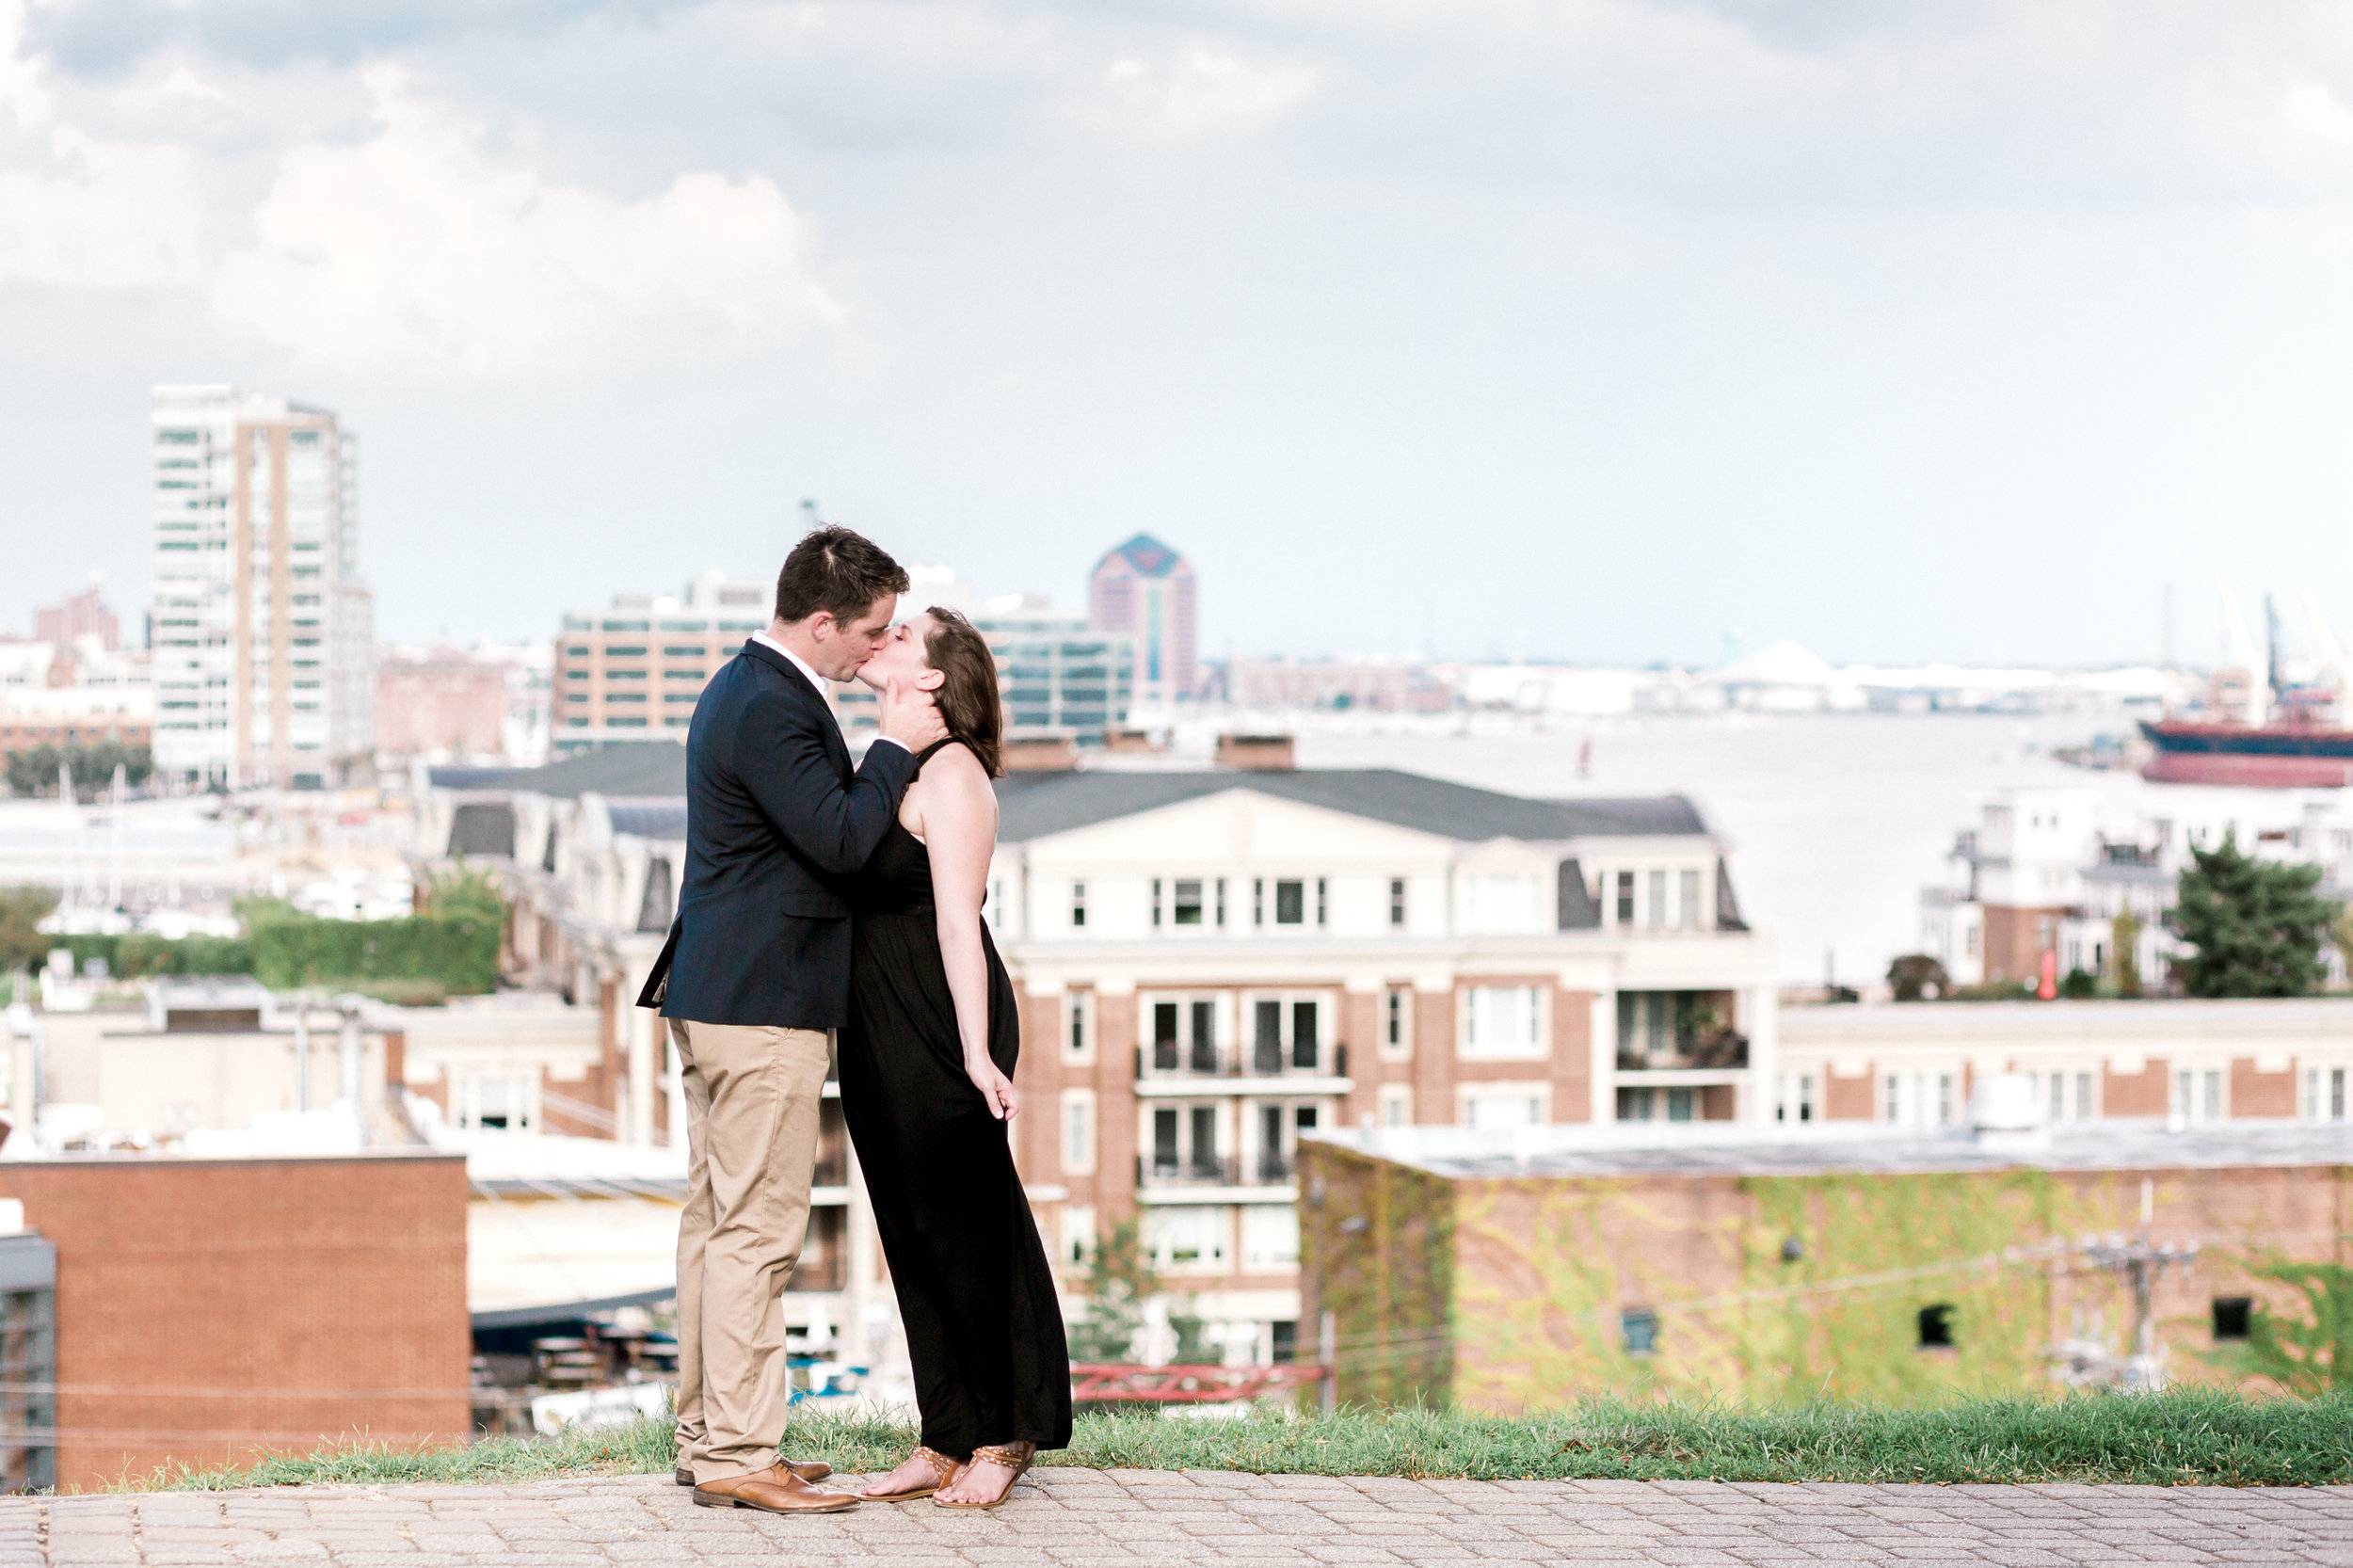 Baltimore Federal Hill Park Stormy Engagement Session Lytle Photo Co (71 of 92).jpg